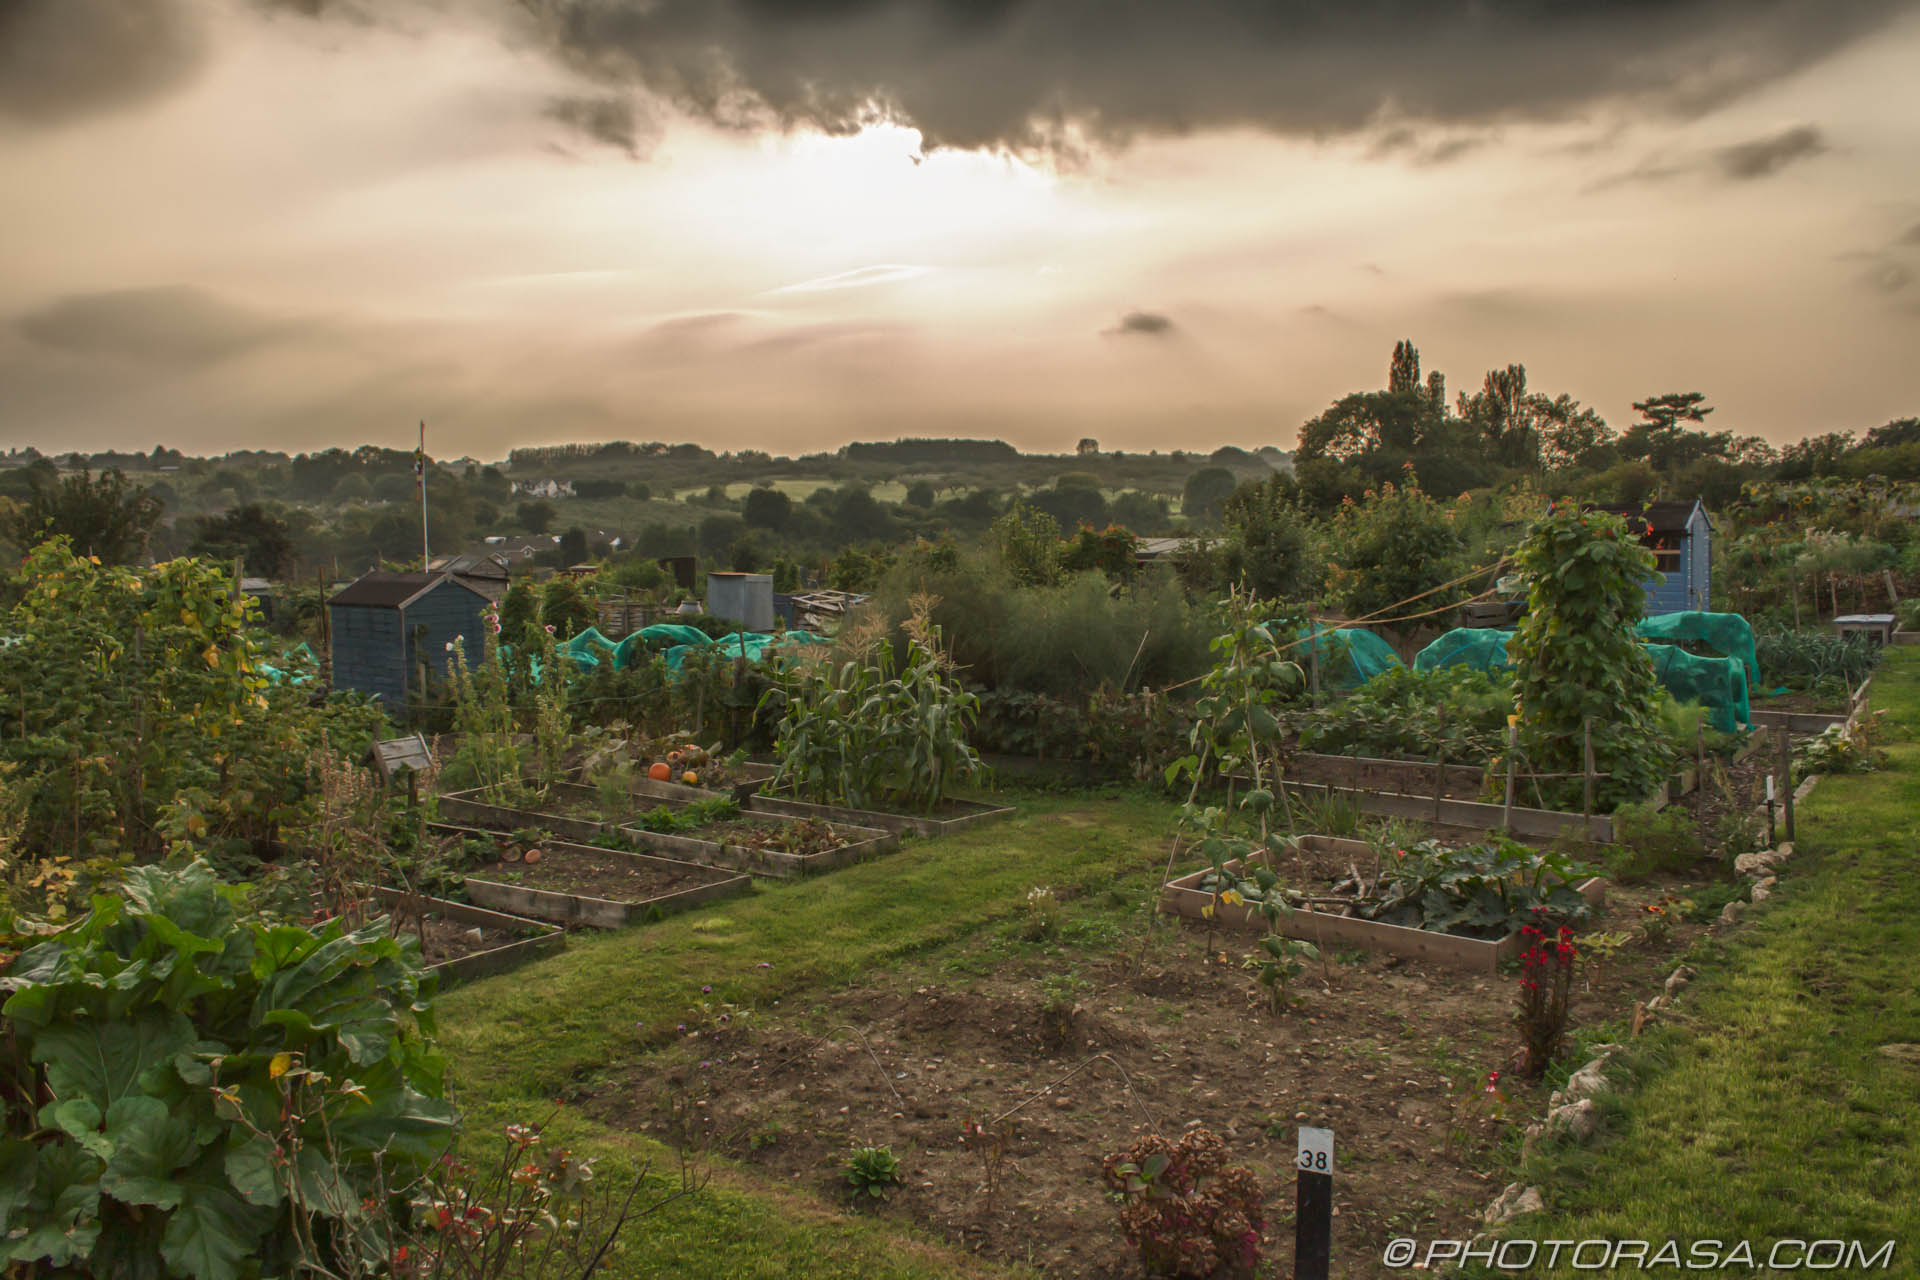 http://photorasa.com/loose-village/sunshine-behind-dark-clouds-over-allotment-plots/